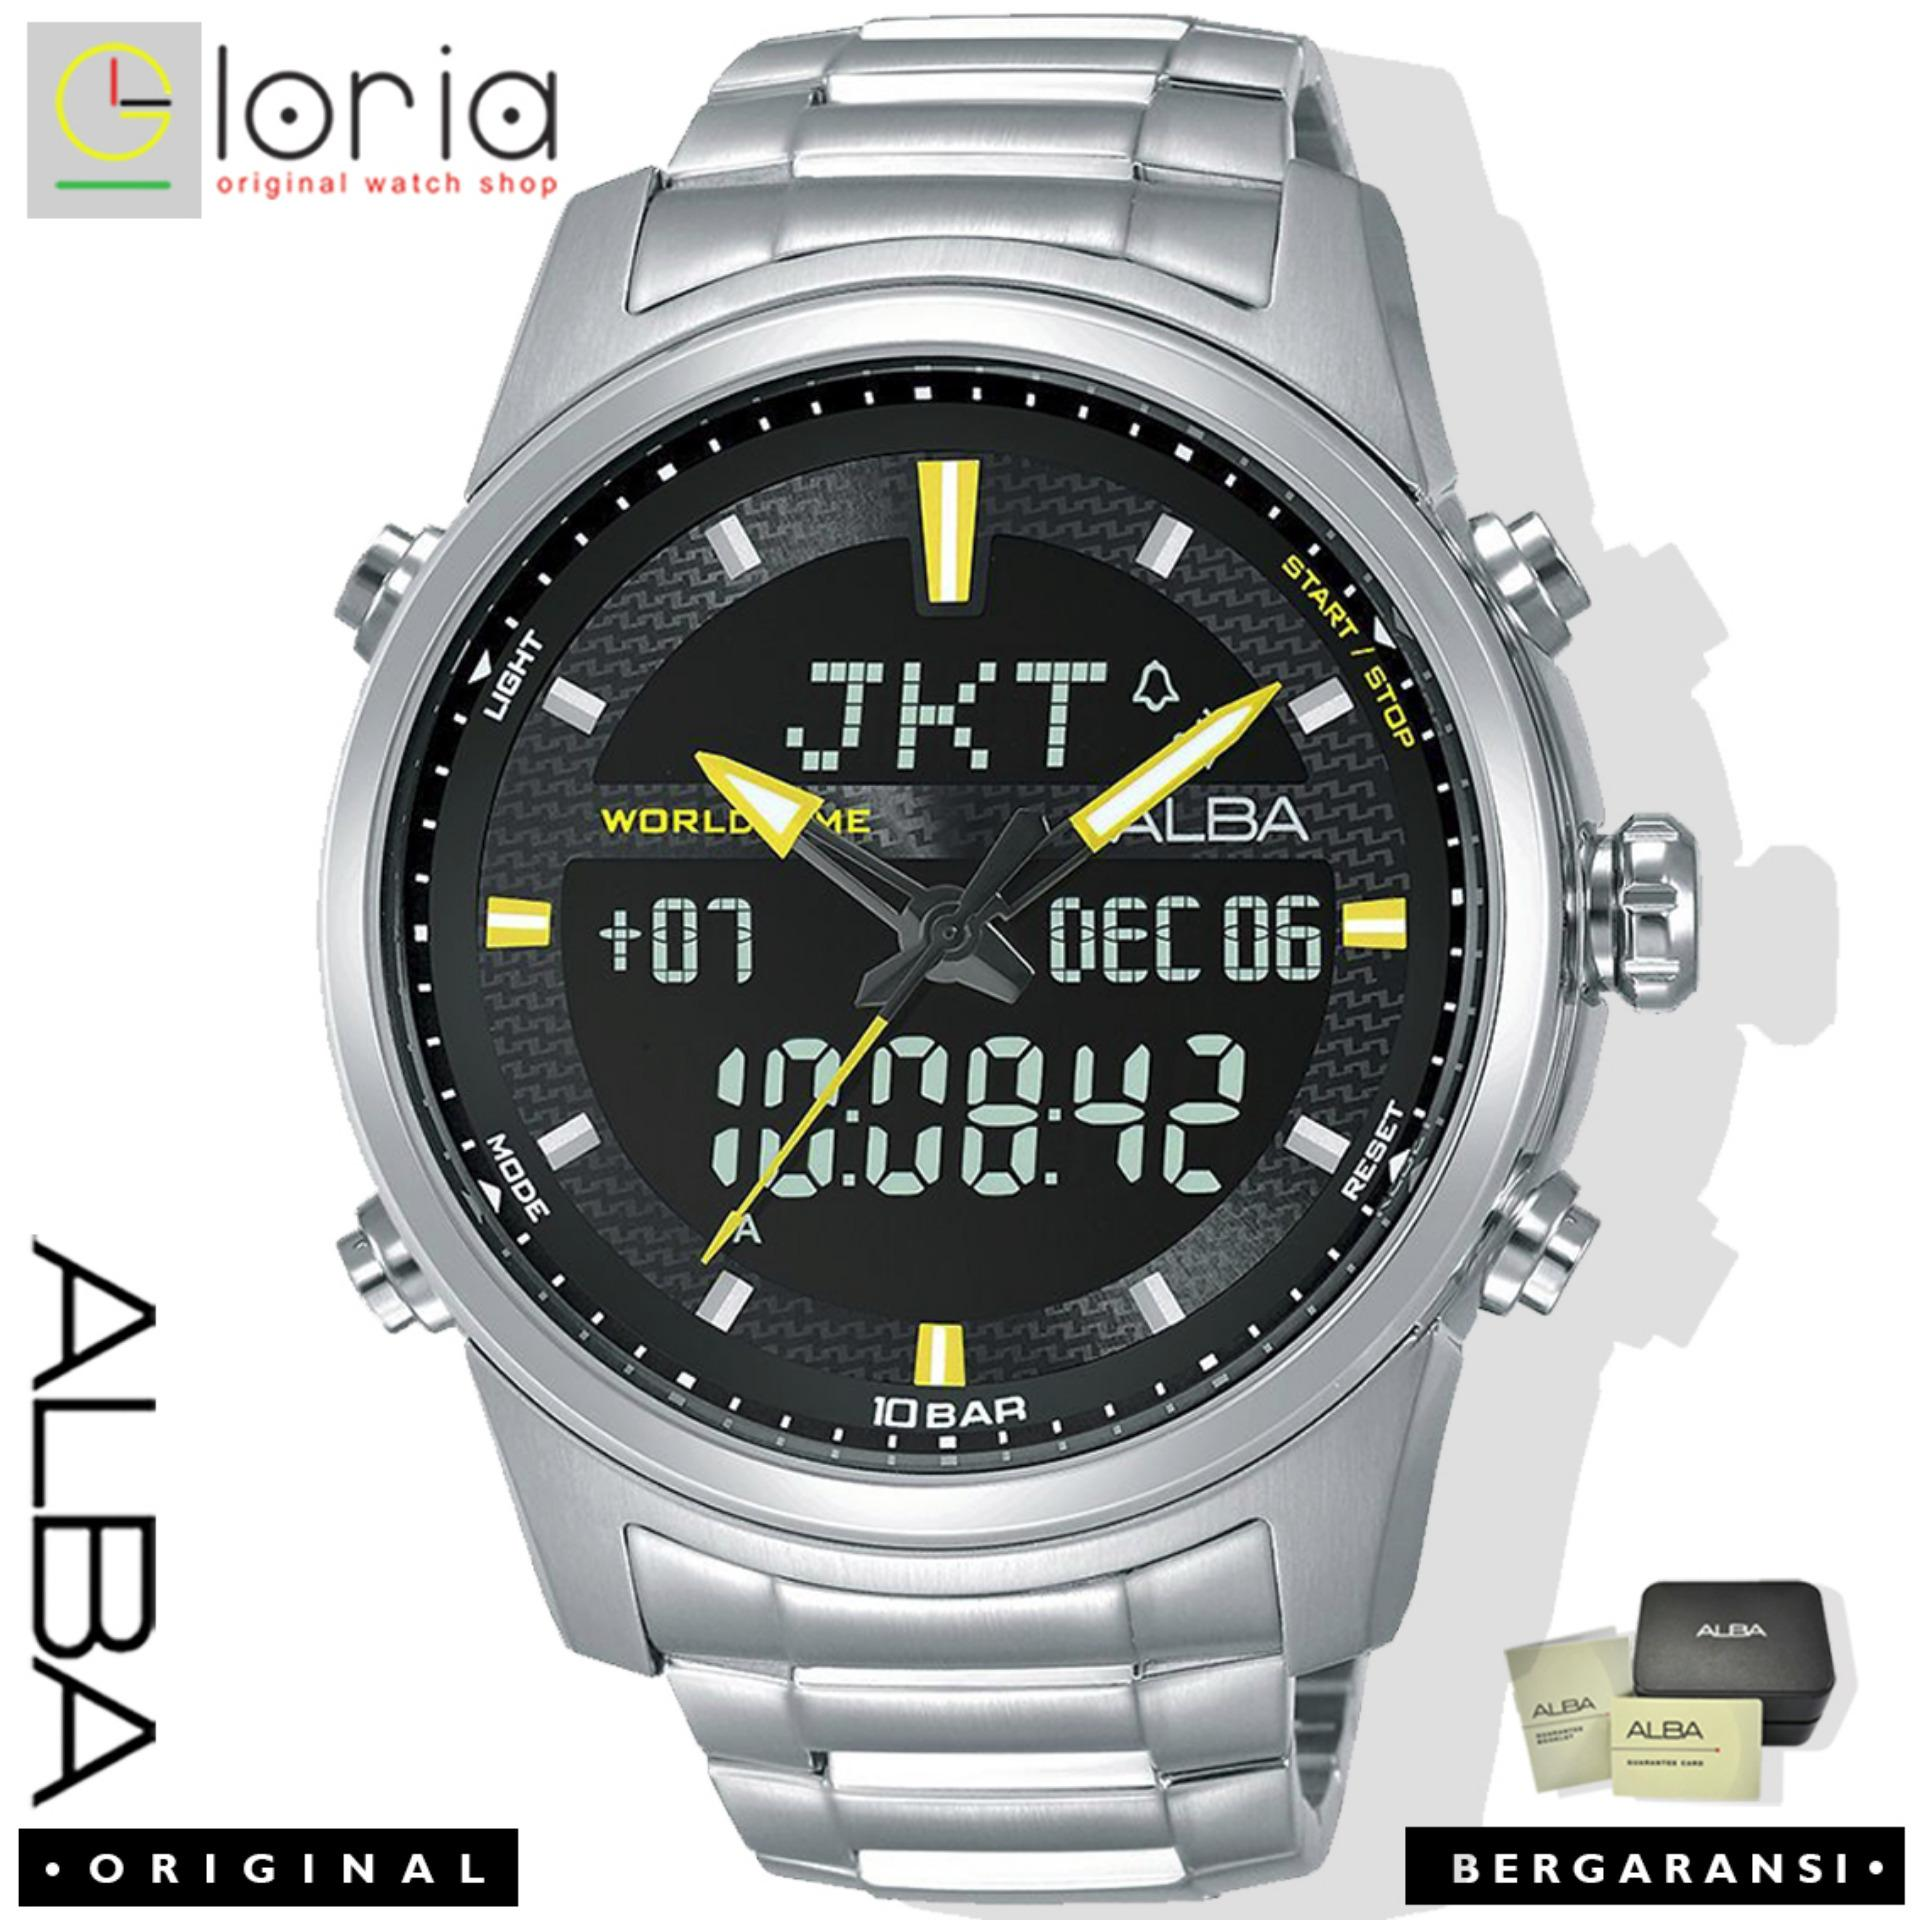 Alba AZ40 Series Jam Tangan Pria Dual Time Digital Analog Tali Stainless / Nylon / Kulit